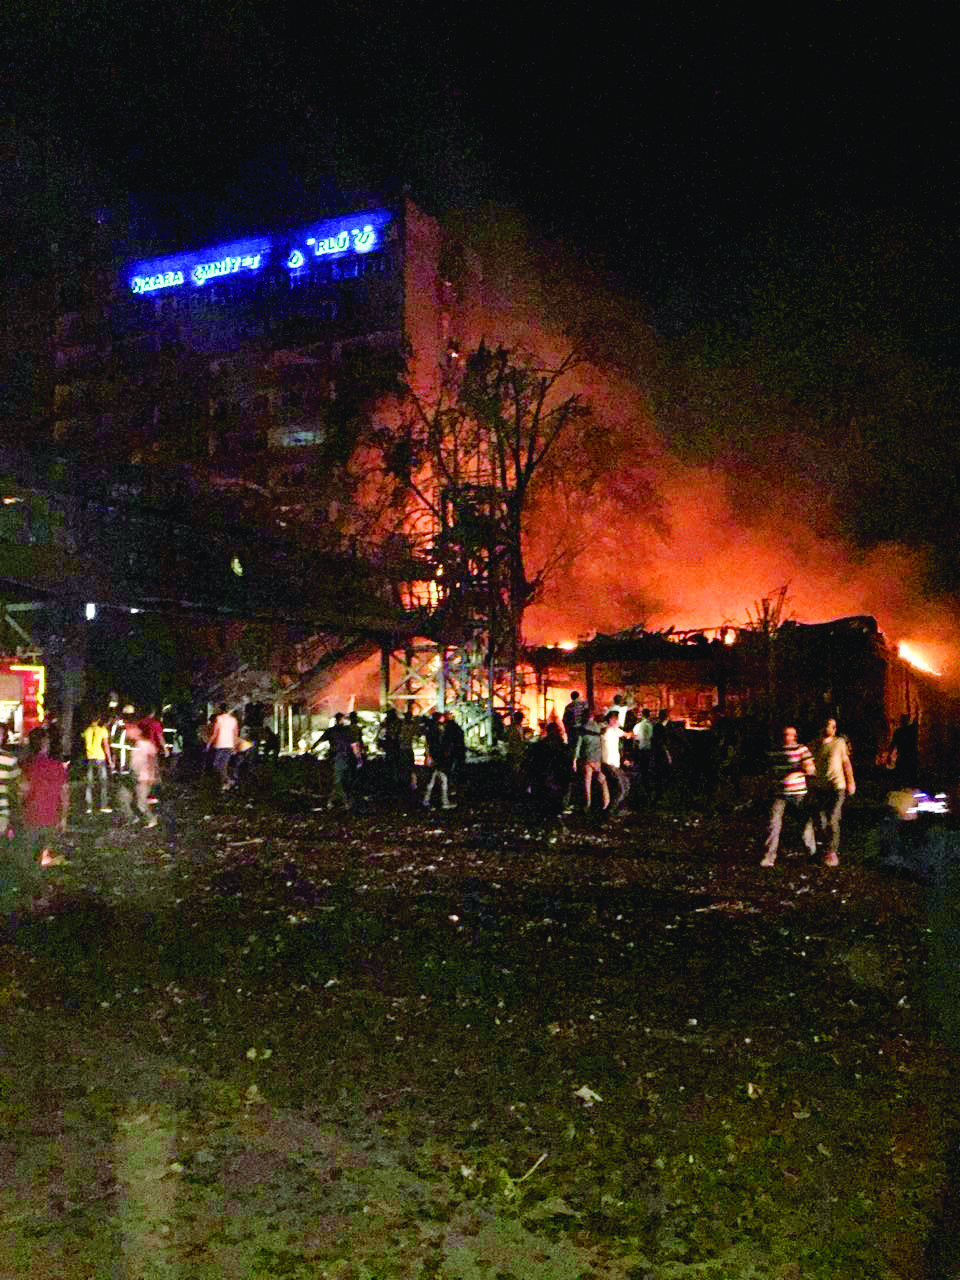 3F-16s controlled by coup pilots bombed the police headquarters, which was also under fire from tanks and helicopters.